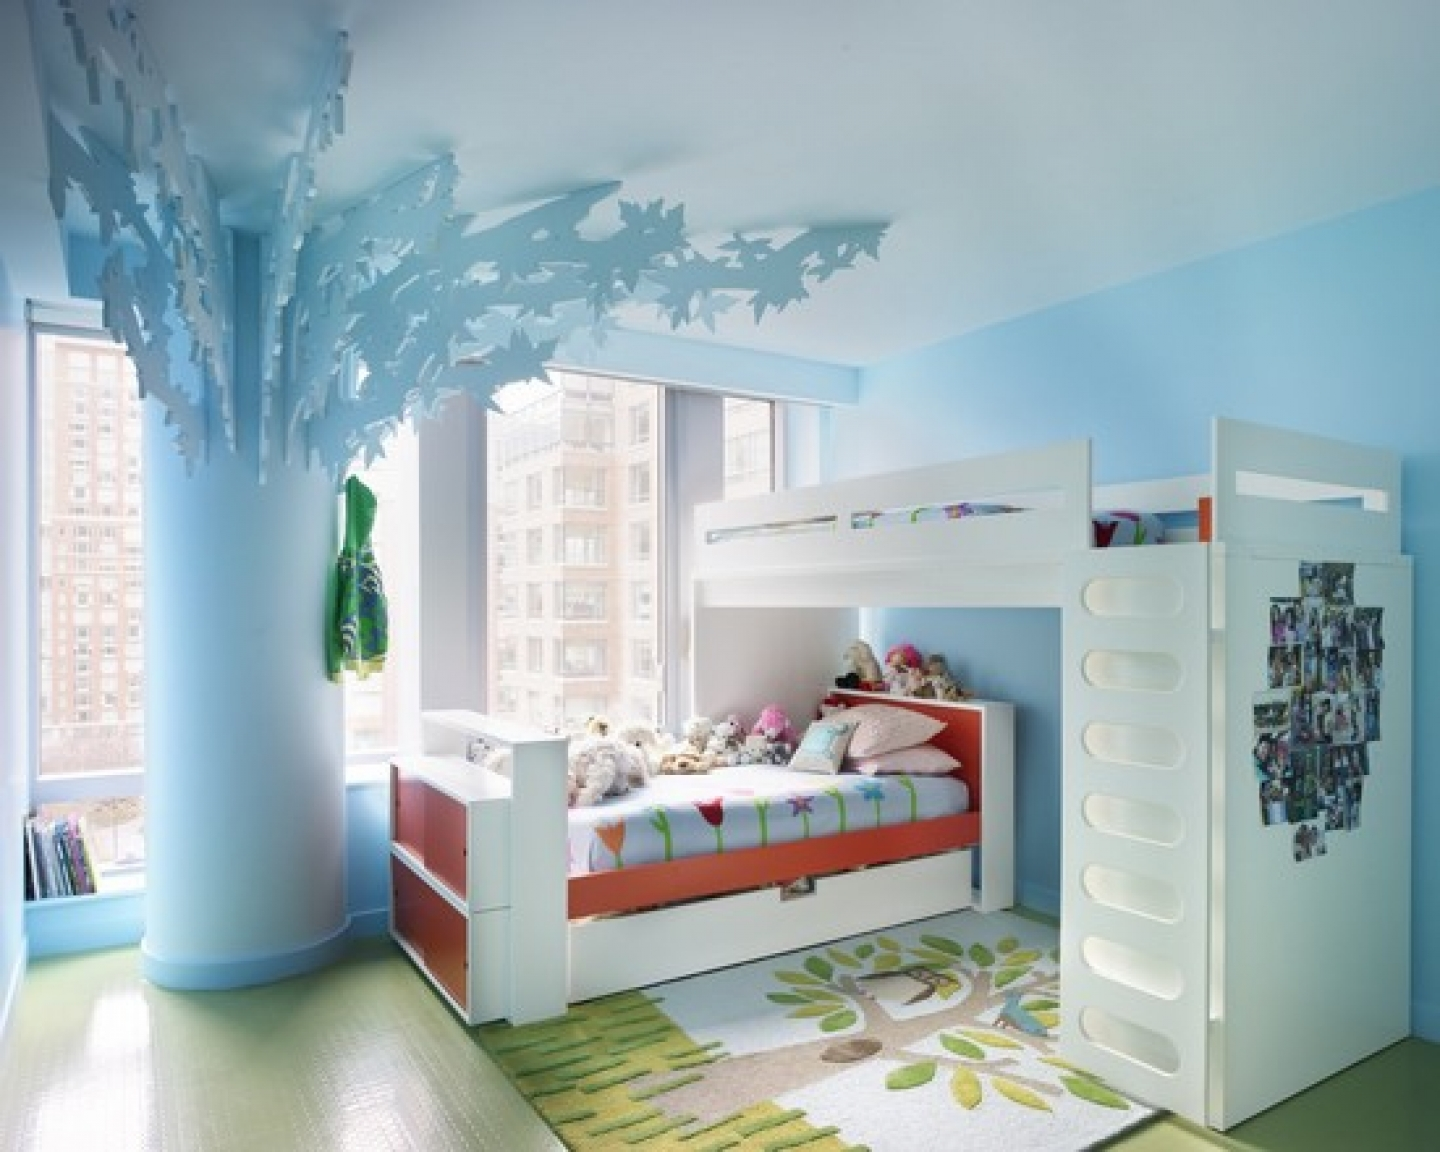 Light Blue Painted Wall Light Blue Special And Beautiful Decorations White  Painted Bedframe Cute And Comfortable